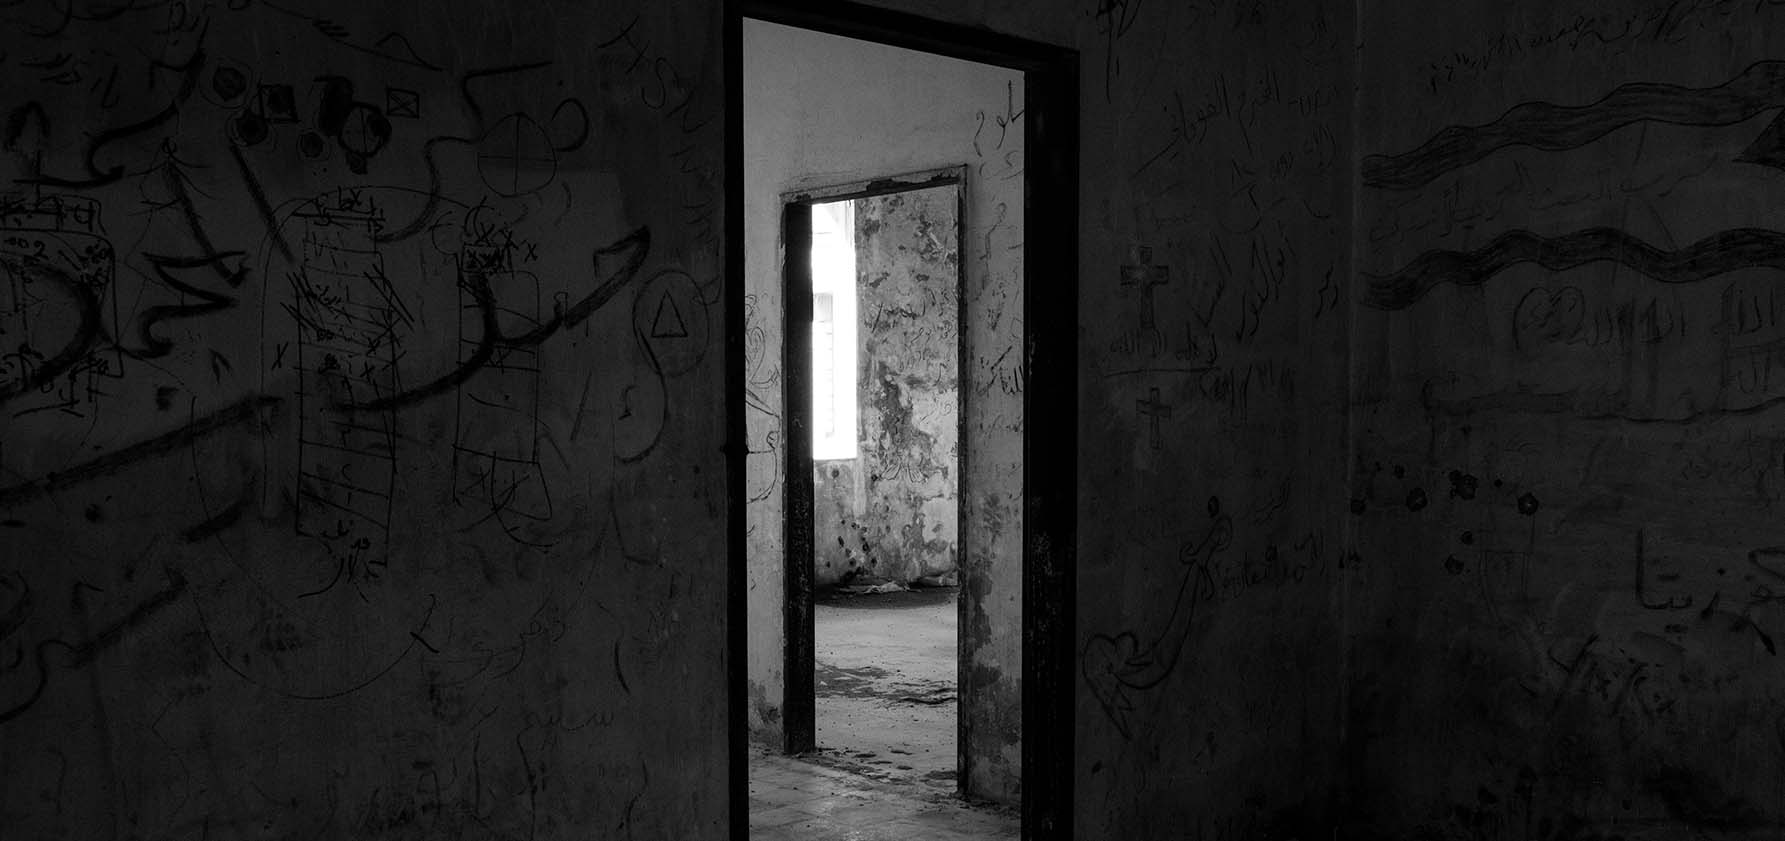 Doorways in a dark abandoned old fort.